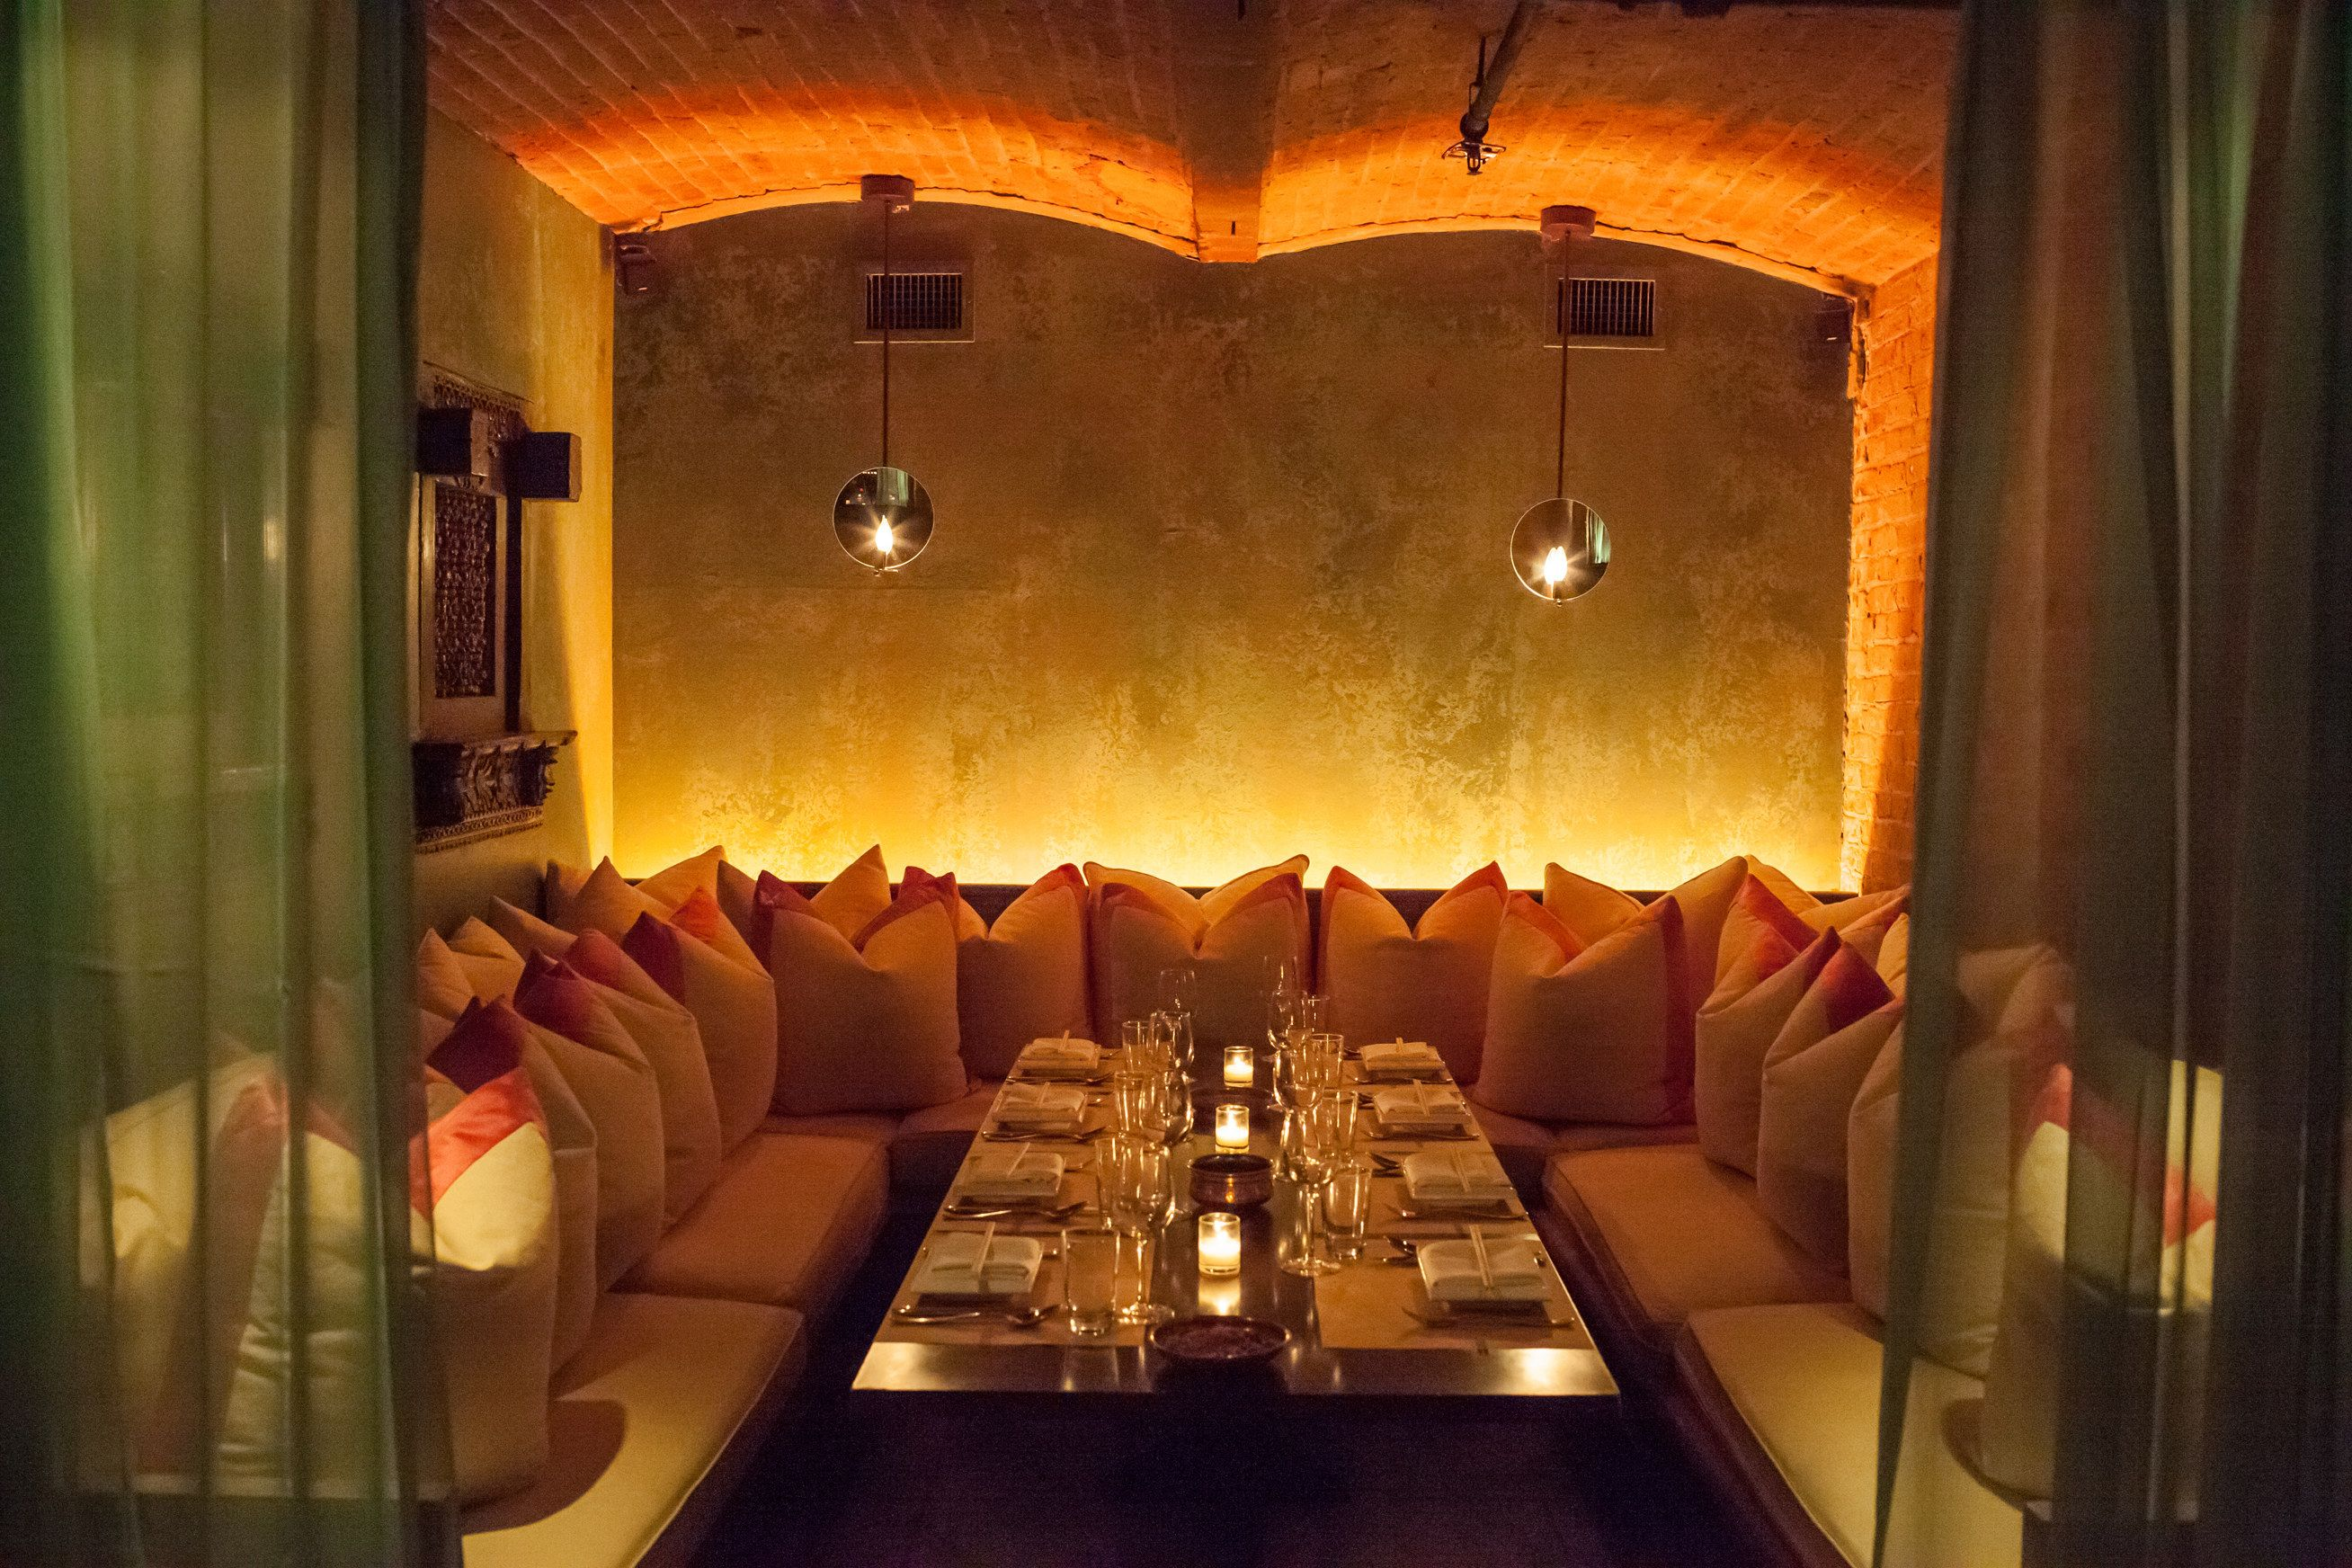 Nyc Restaurants With Private Dining Rooms Collection Endearing 8 Impressive Private Dining Rooms In New York Restaurants  Nomad . Review